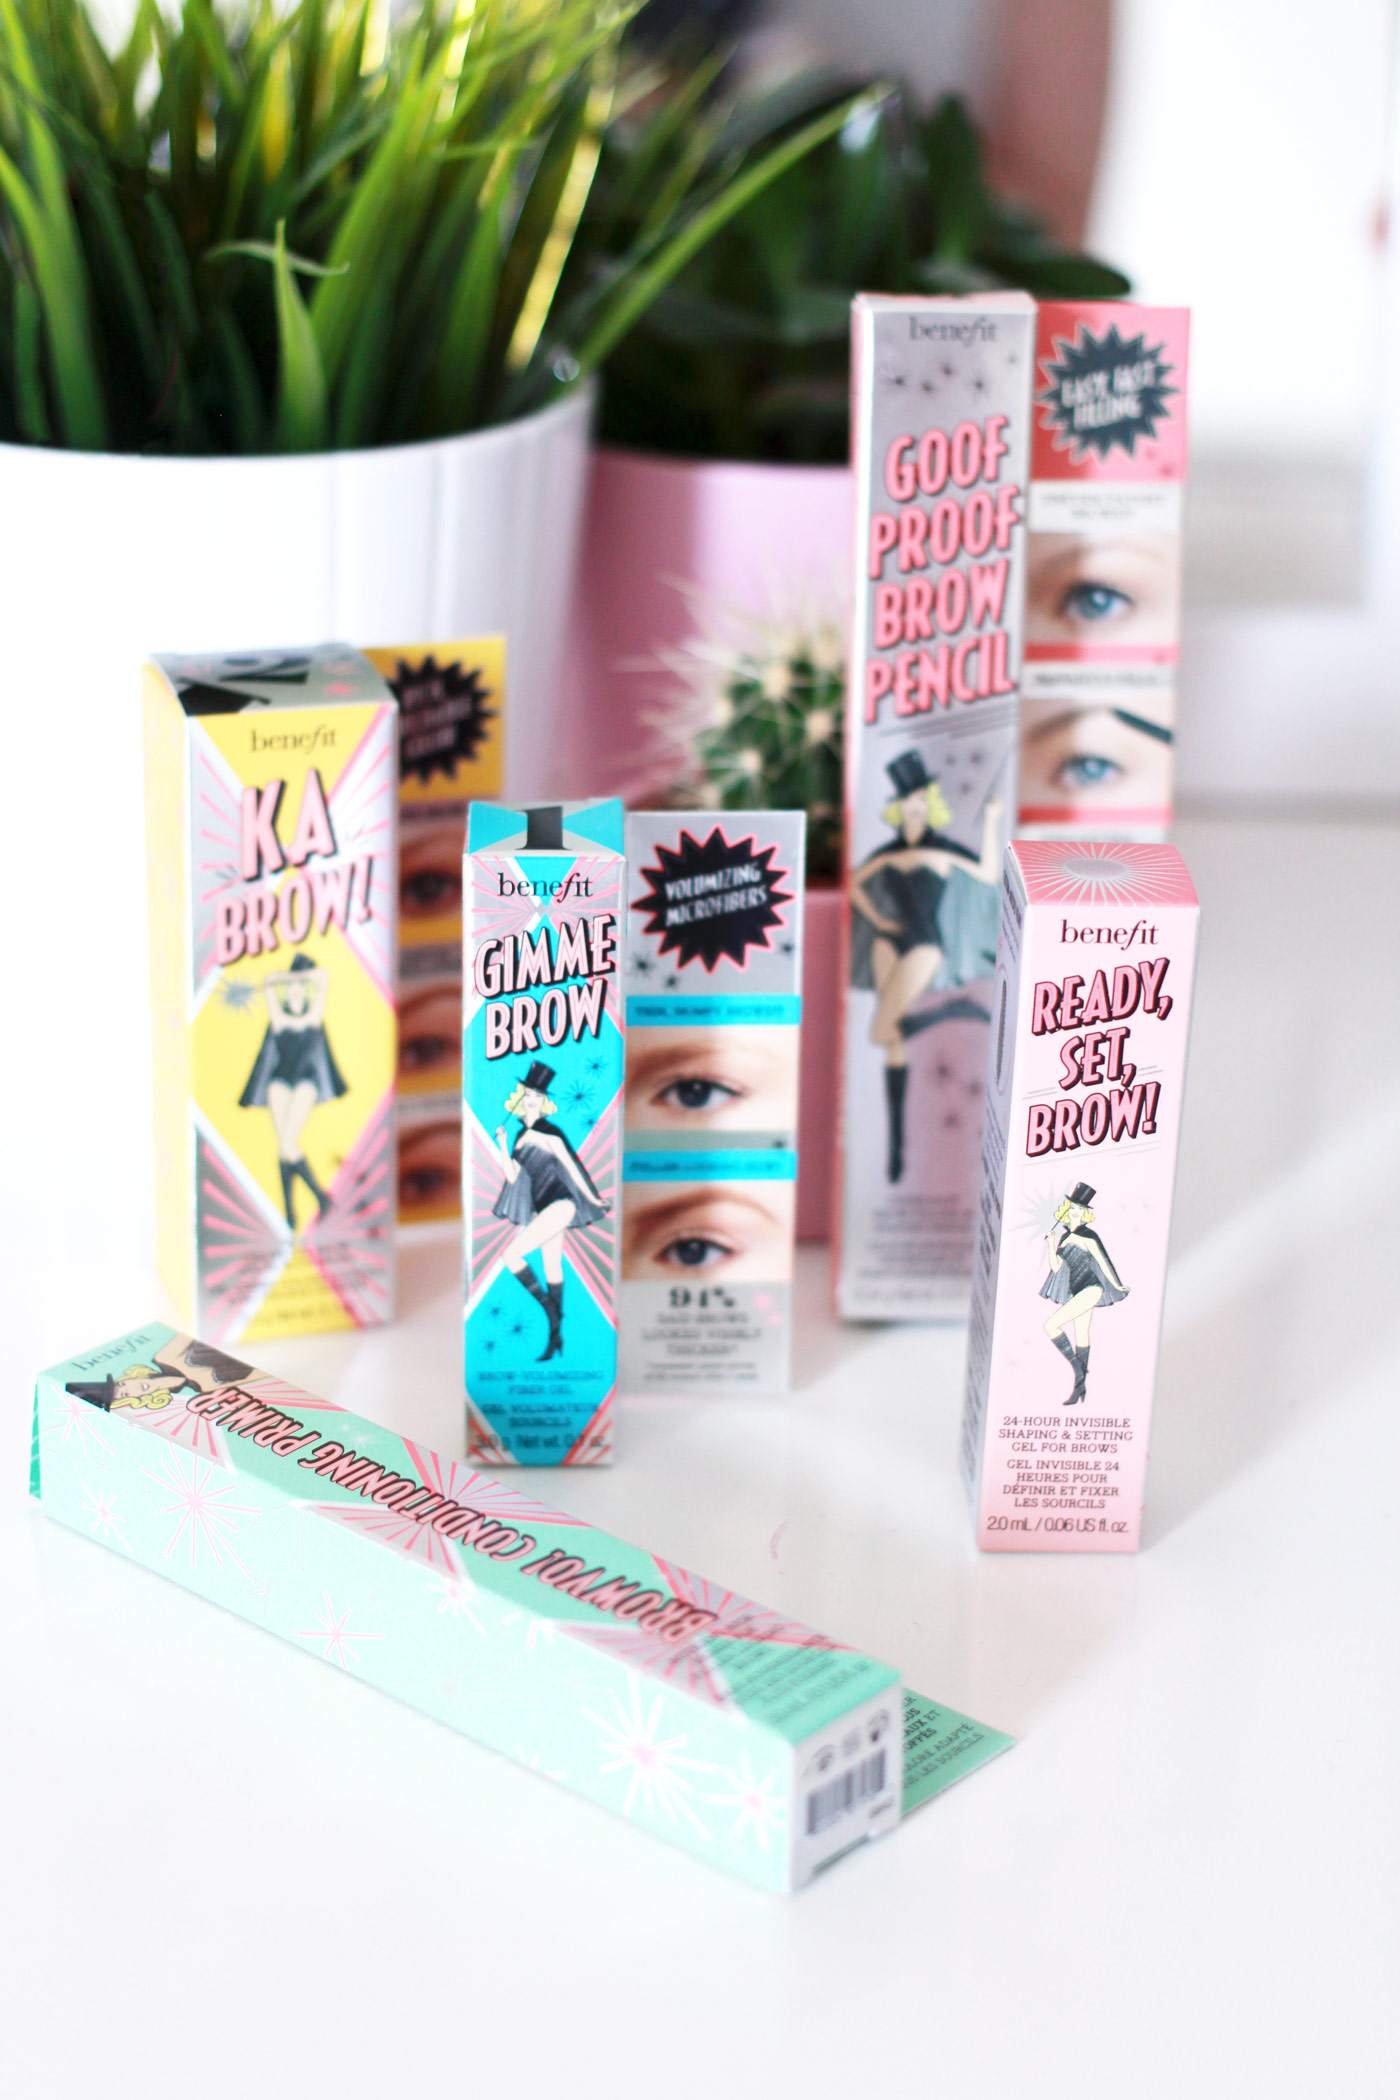 benefit-ka-brow-gimme-brow-goof-proof-brow-pencil-ready-set-brow-conditioning-primer